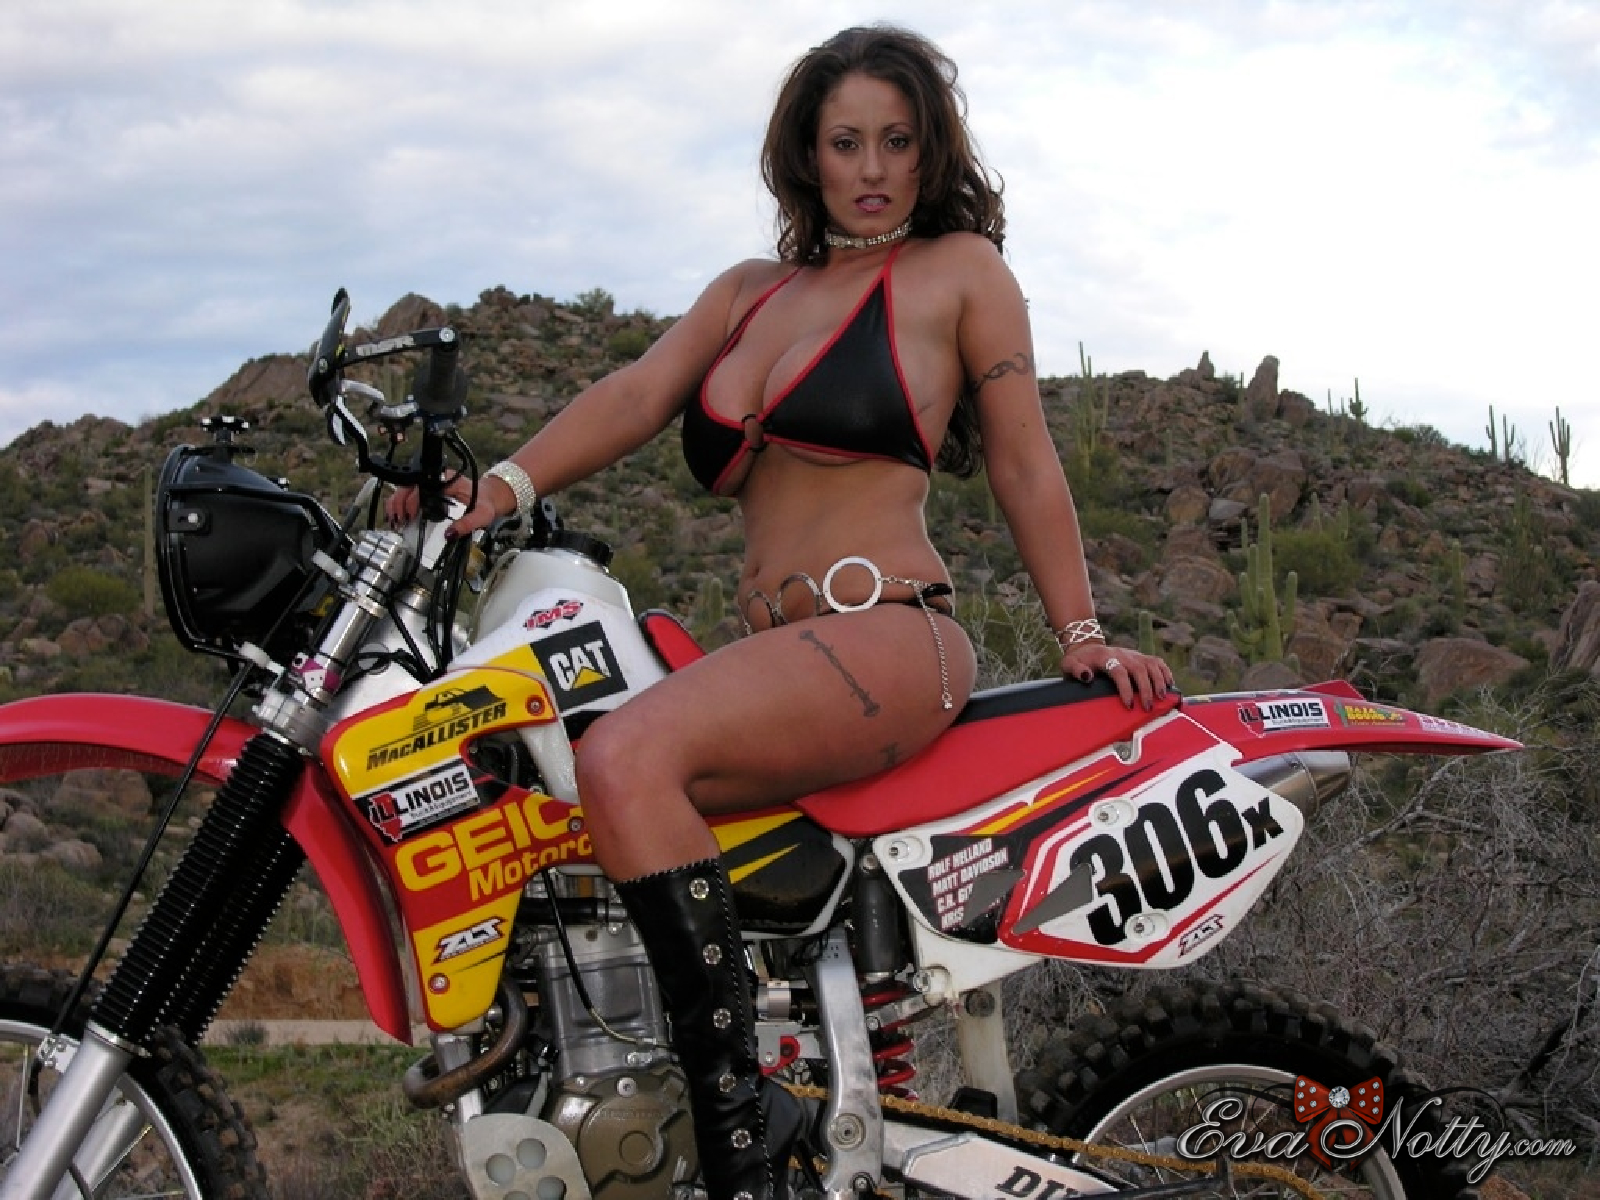 Dirtbike with girls nude consider, that